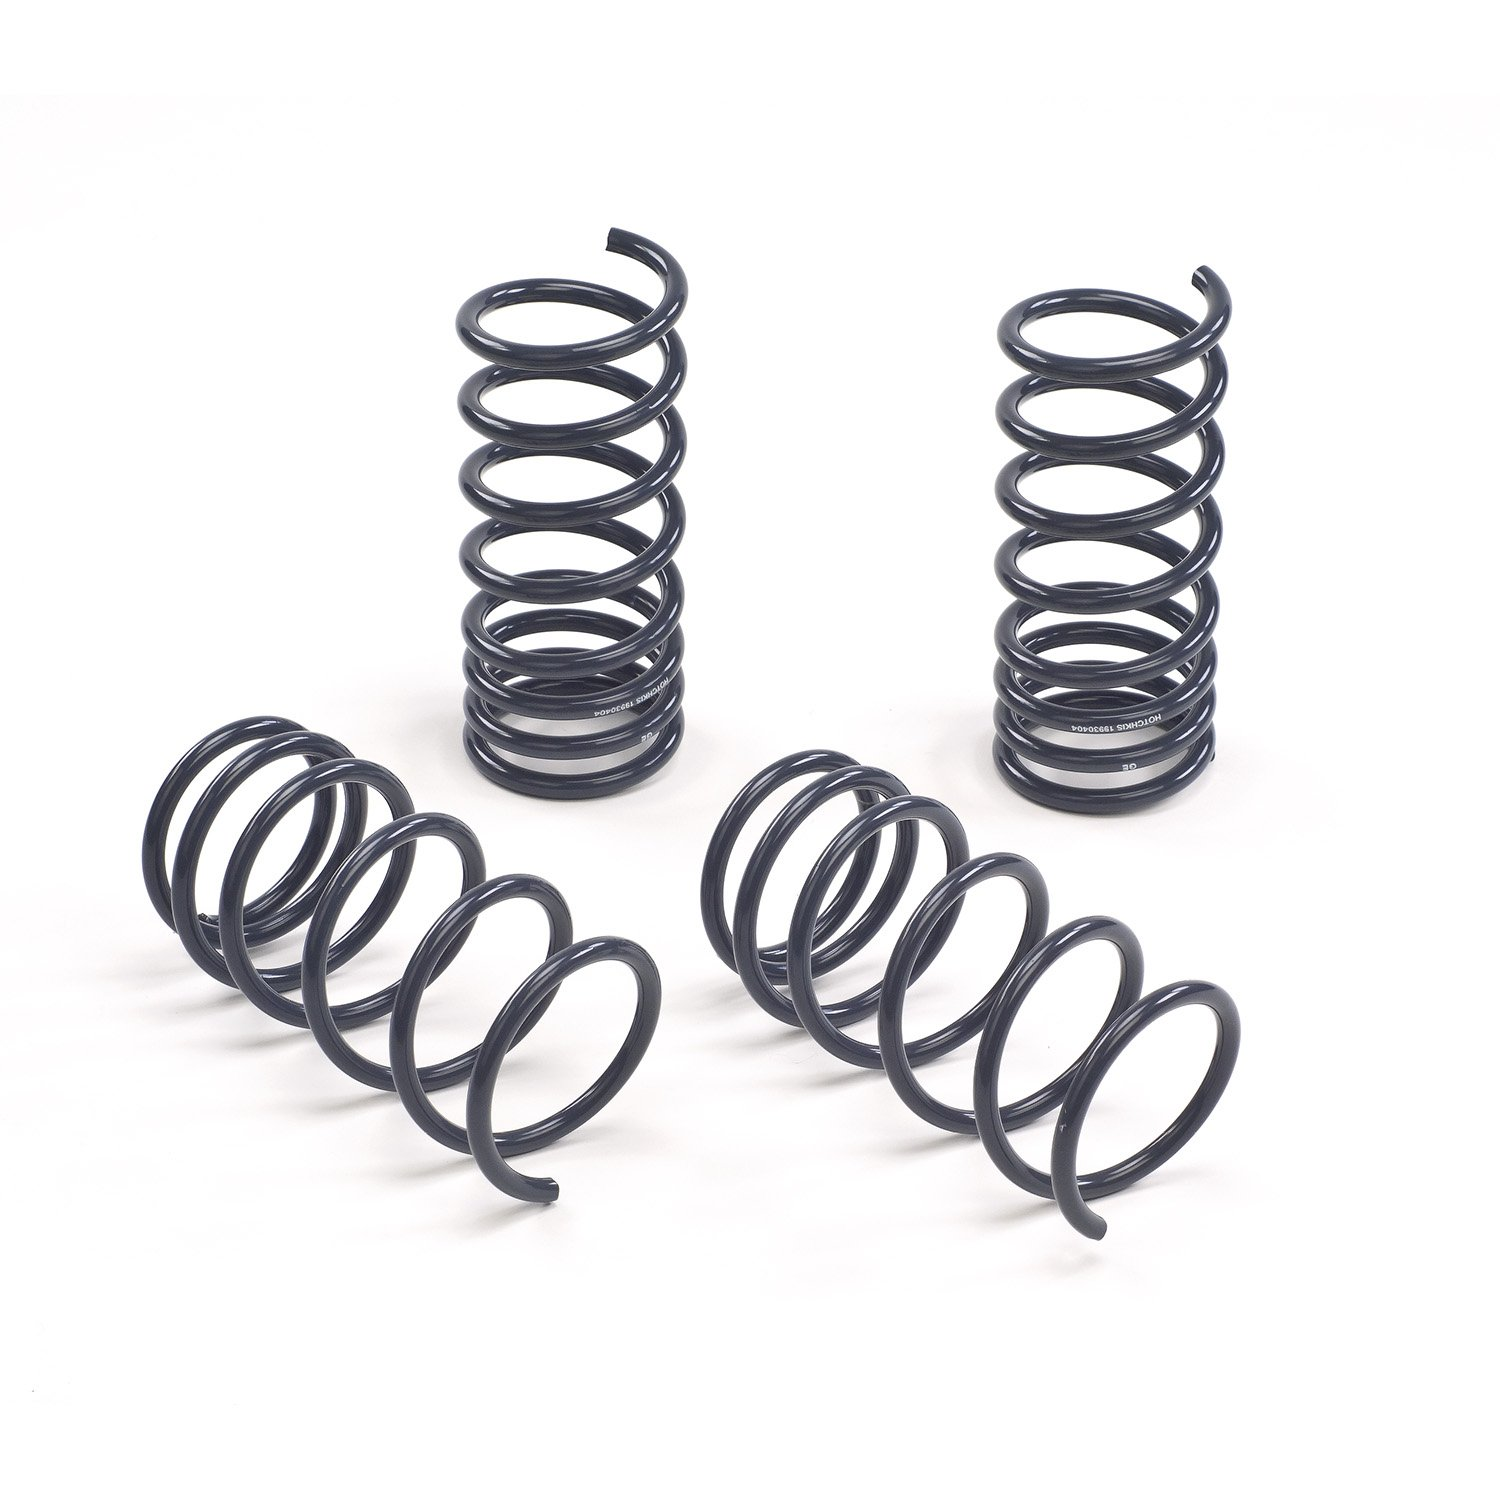 Hotchkis 19445 Sport Coil Spring for Scion FR-S